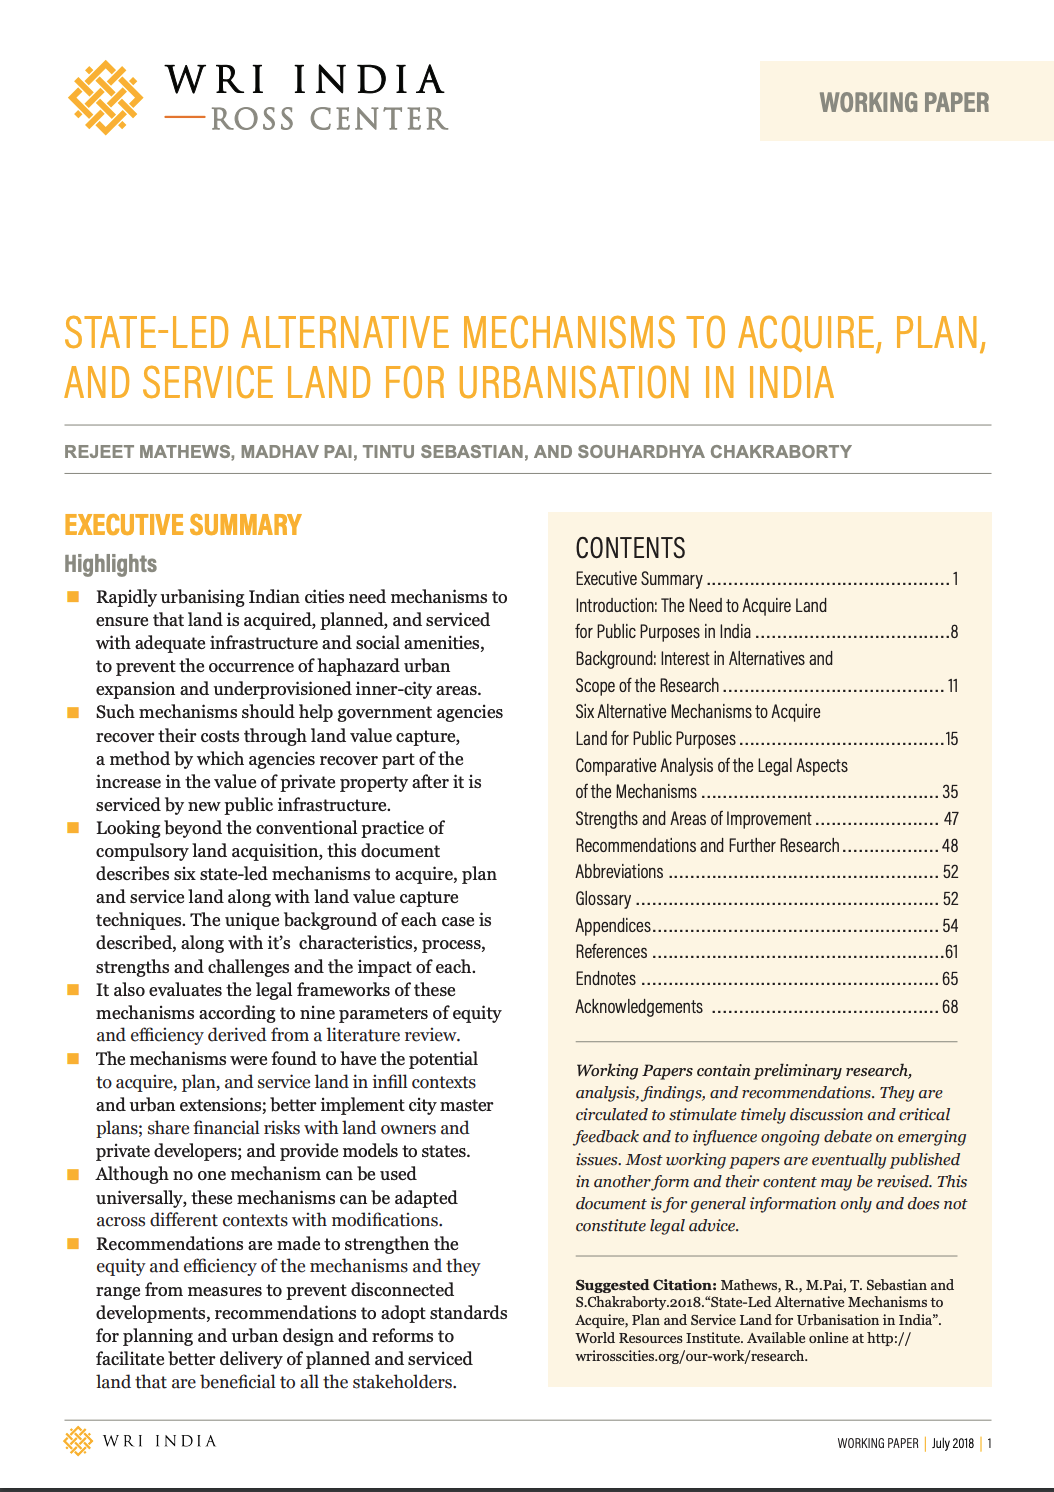 State-led Alternative Mechanisms to Acquire, Plan, and Service Land For Urbanisation in India cover image